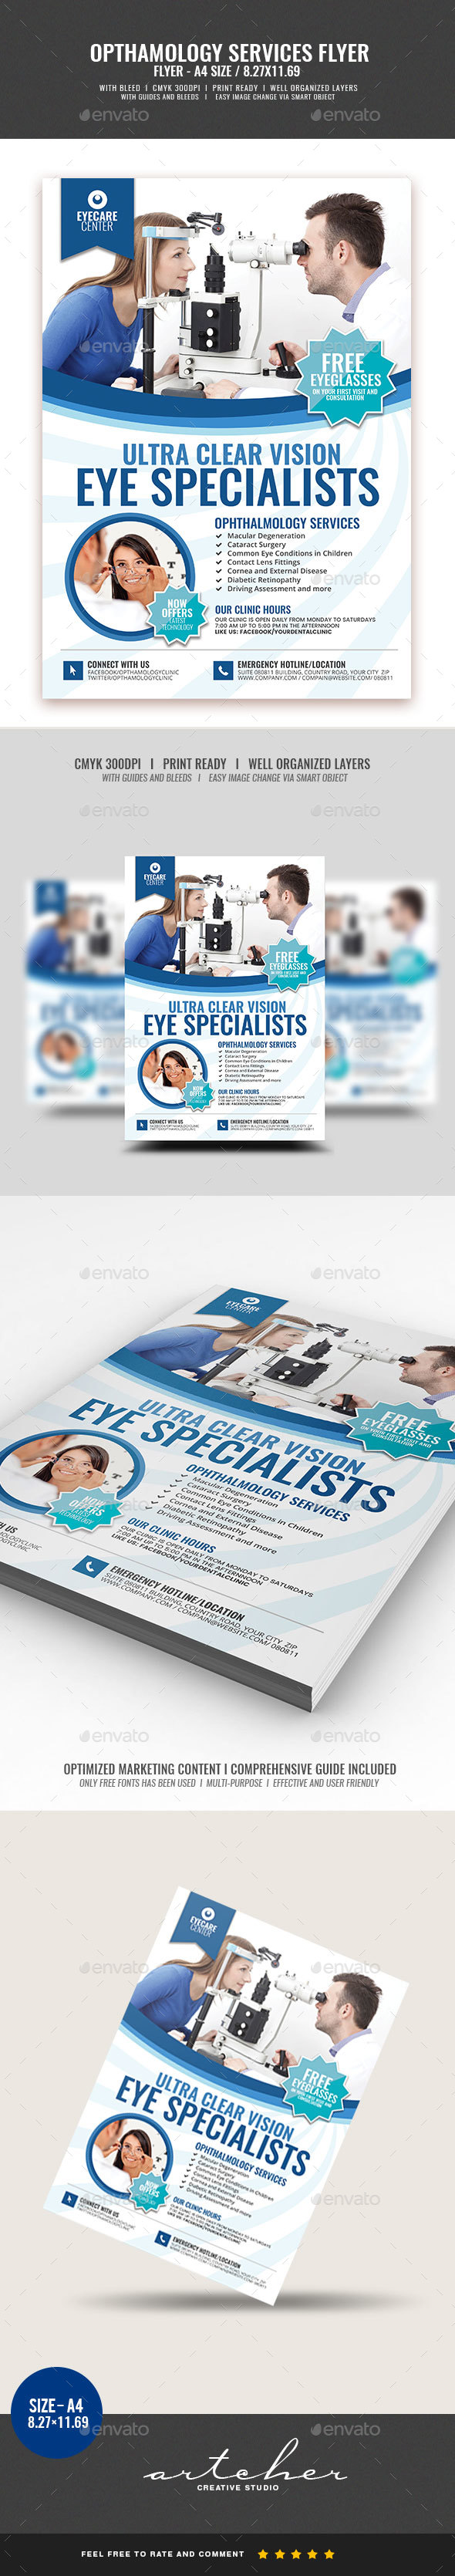 Eye Ophthalmology Services Flyer - Corporate Flyers